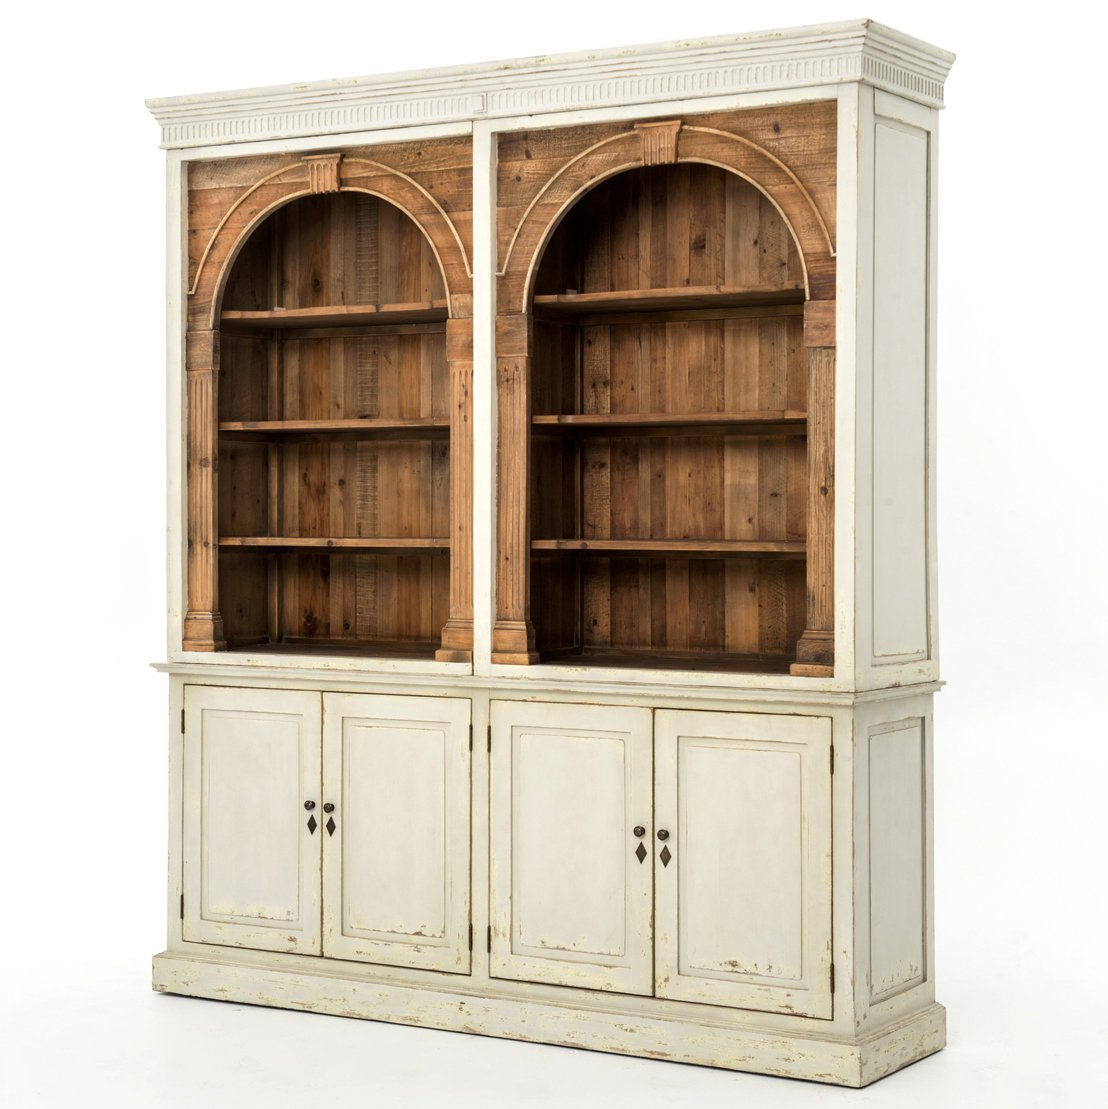 Laurine French Country Rustic Ivory Arch Wood Cabinet 0